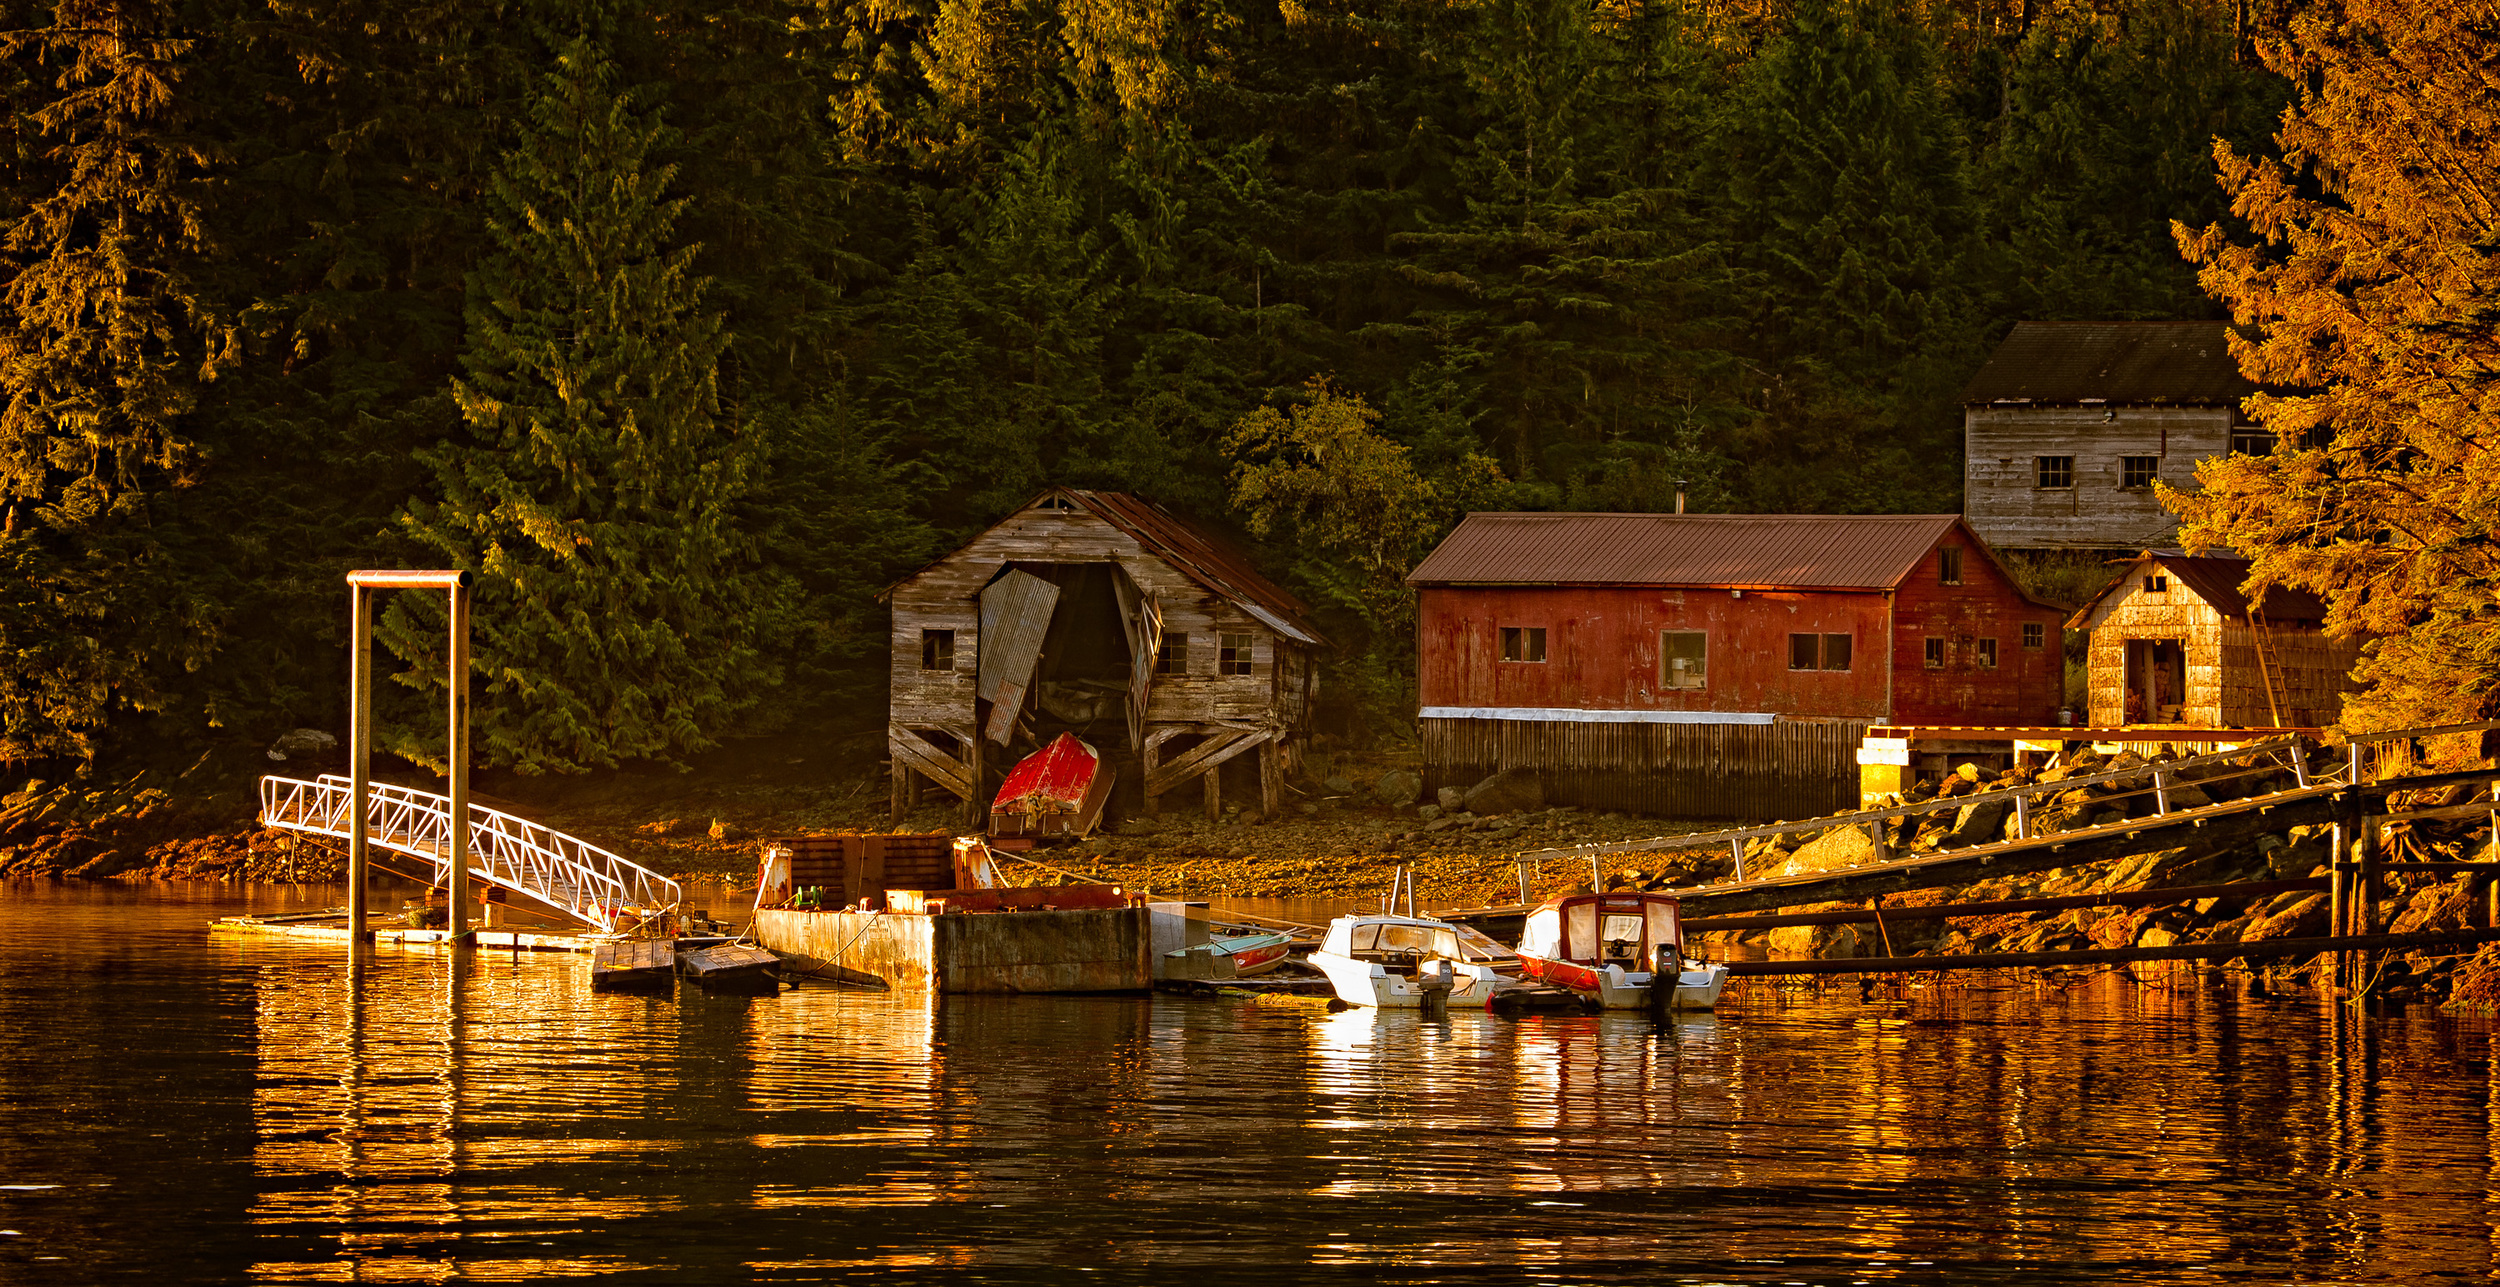 DL_100917_Ketchikan_1676-Edit-3.jpg